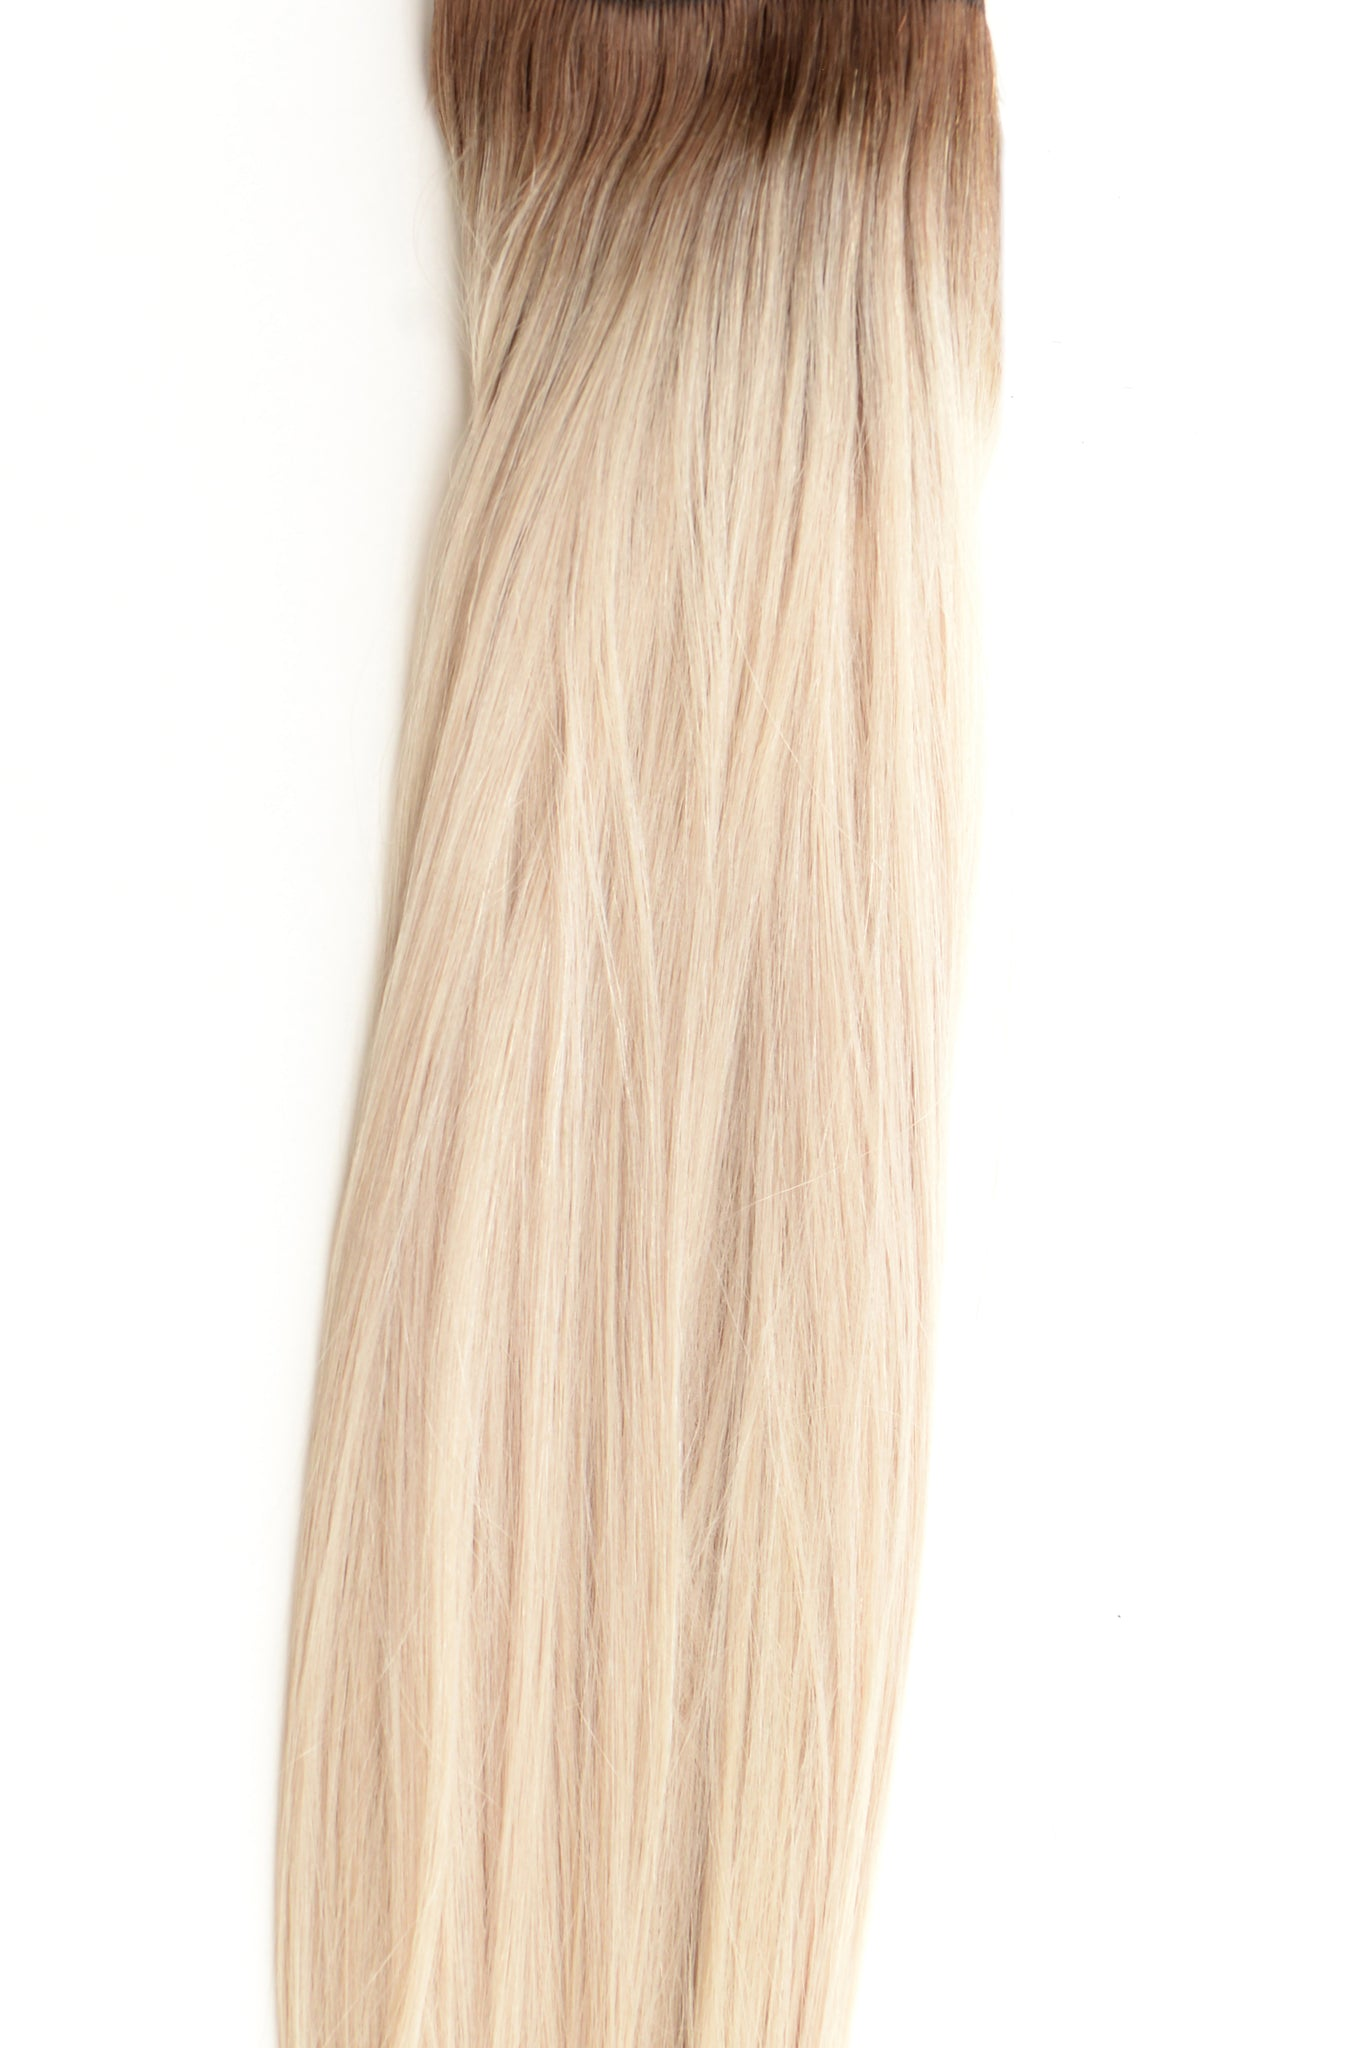 Hollywood Hair Extension from Pryme Hair